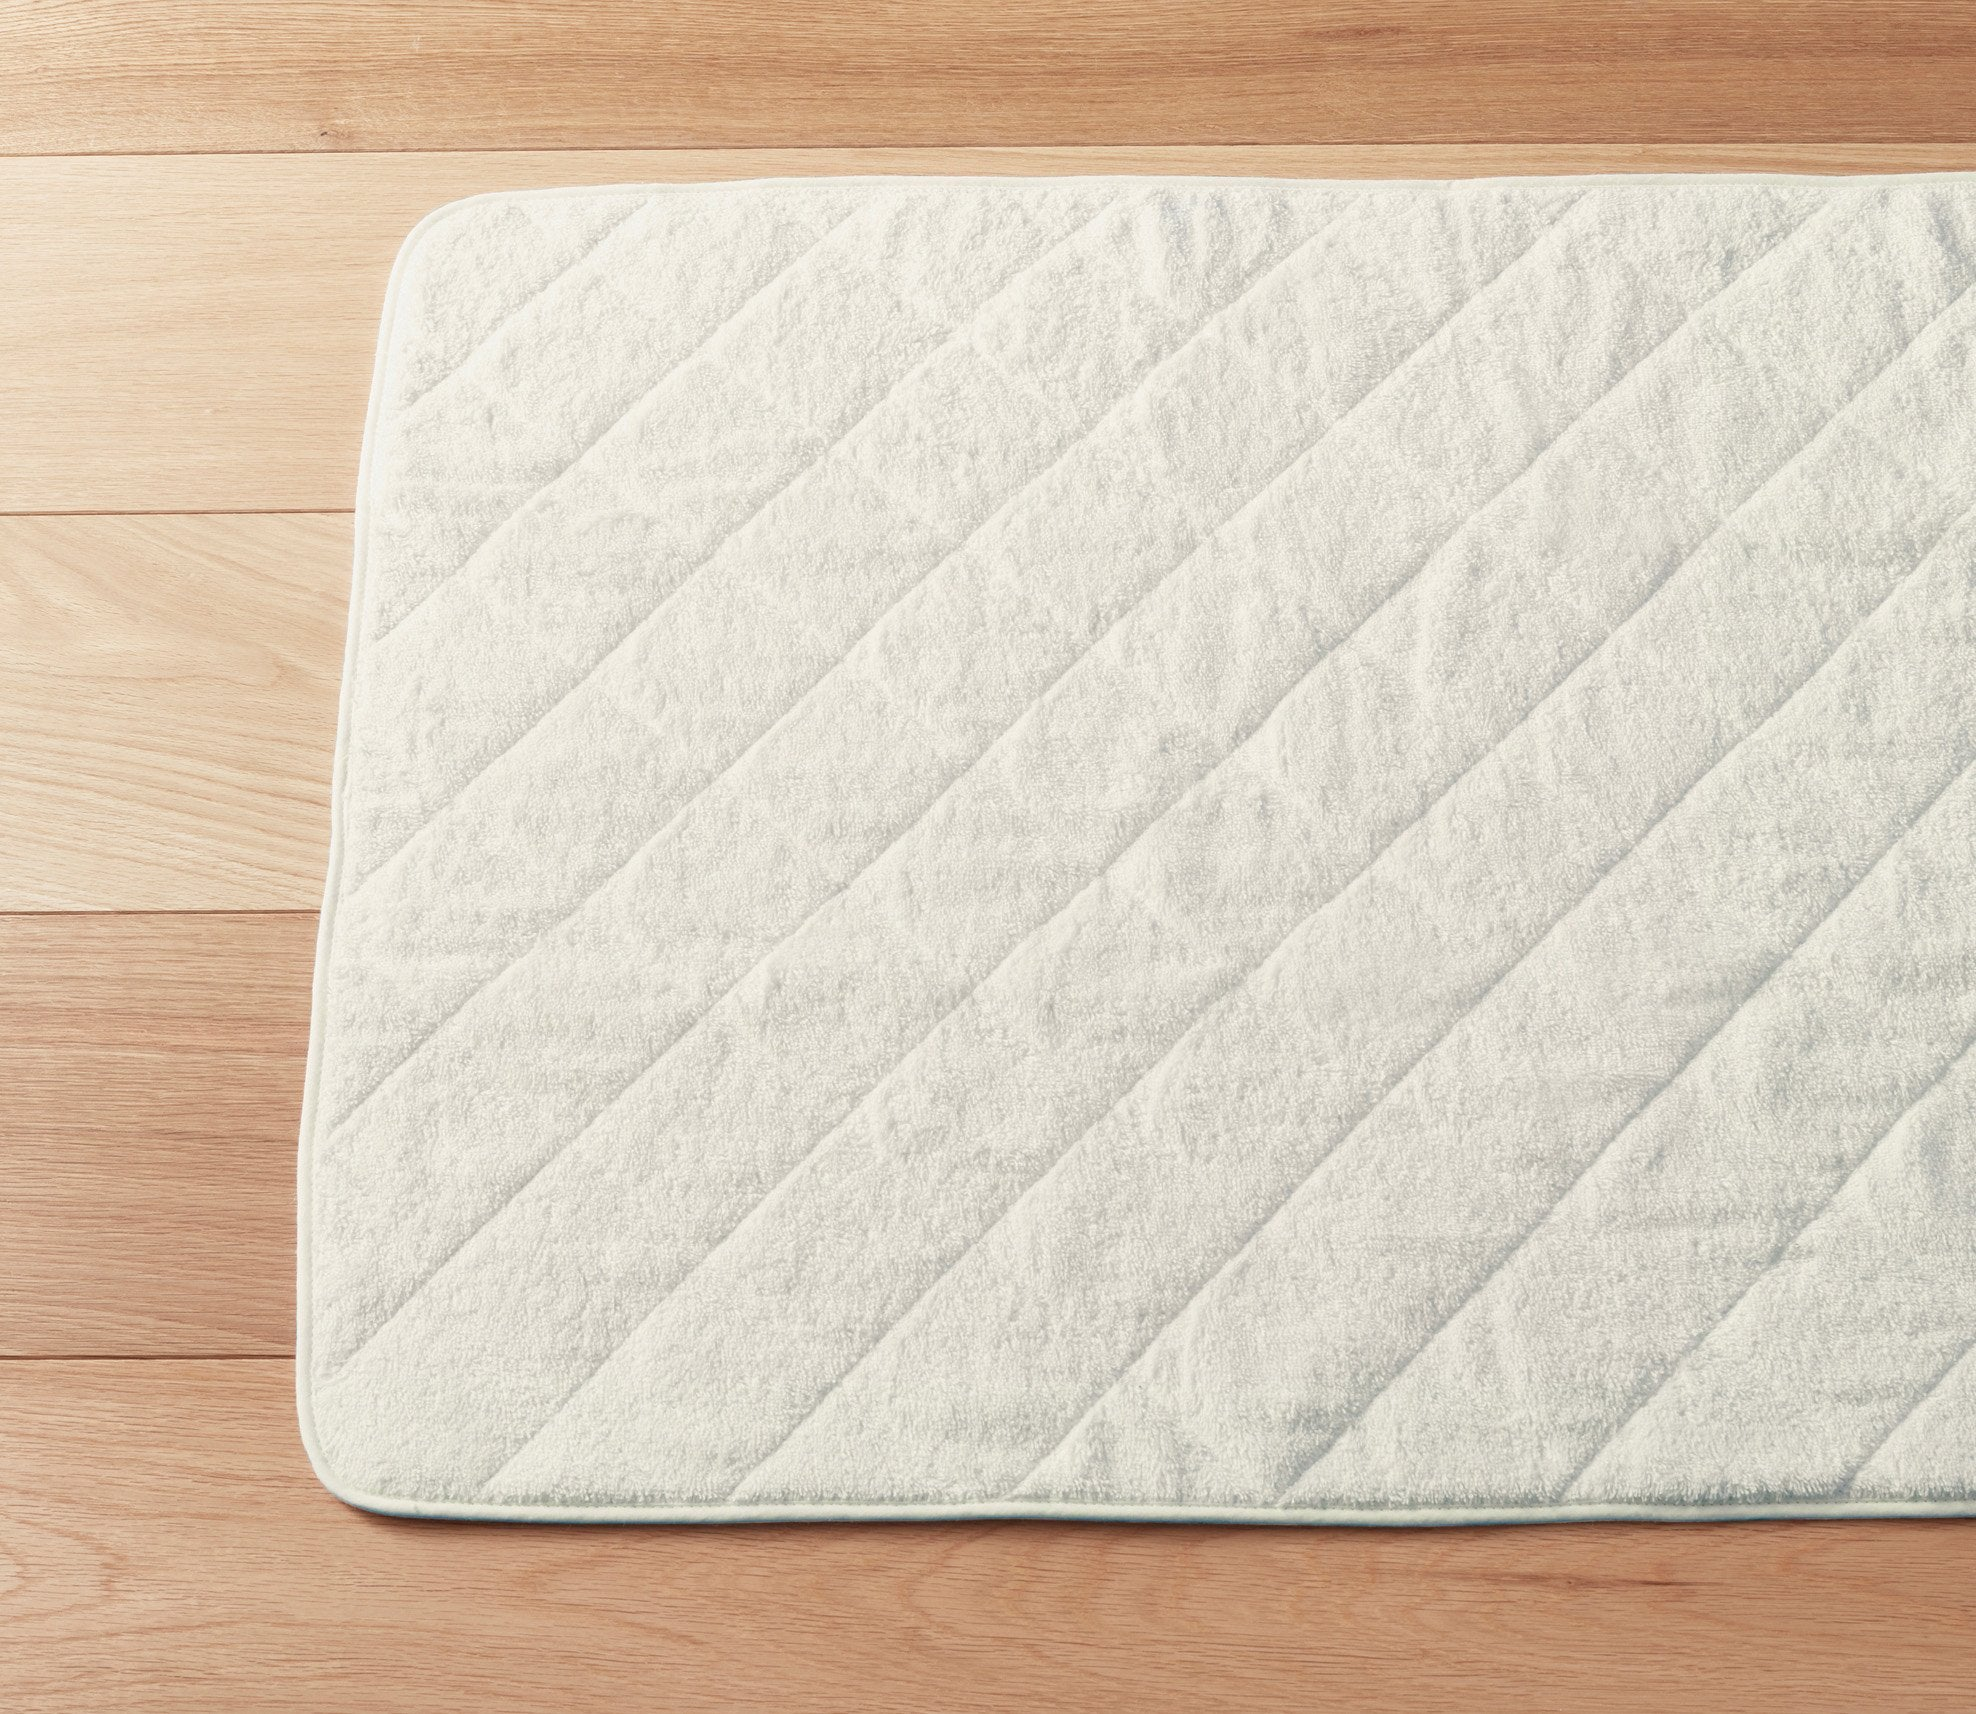 Cairo Quilted Bath Mat Ivory Product Image 1